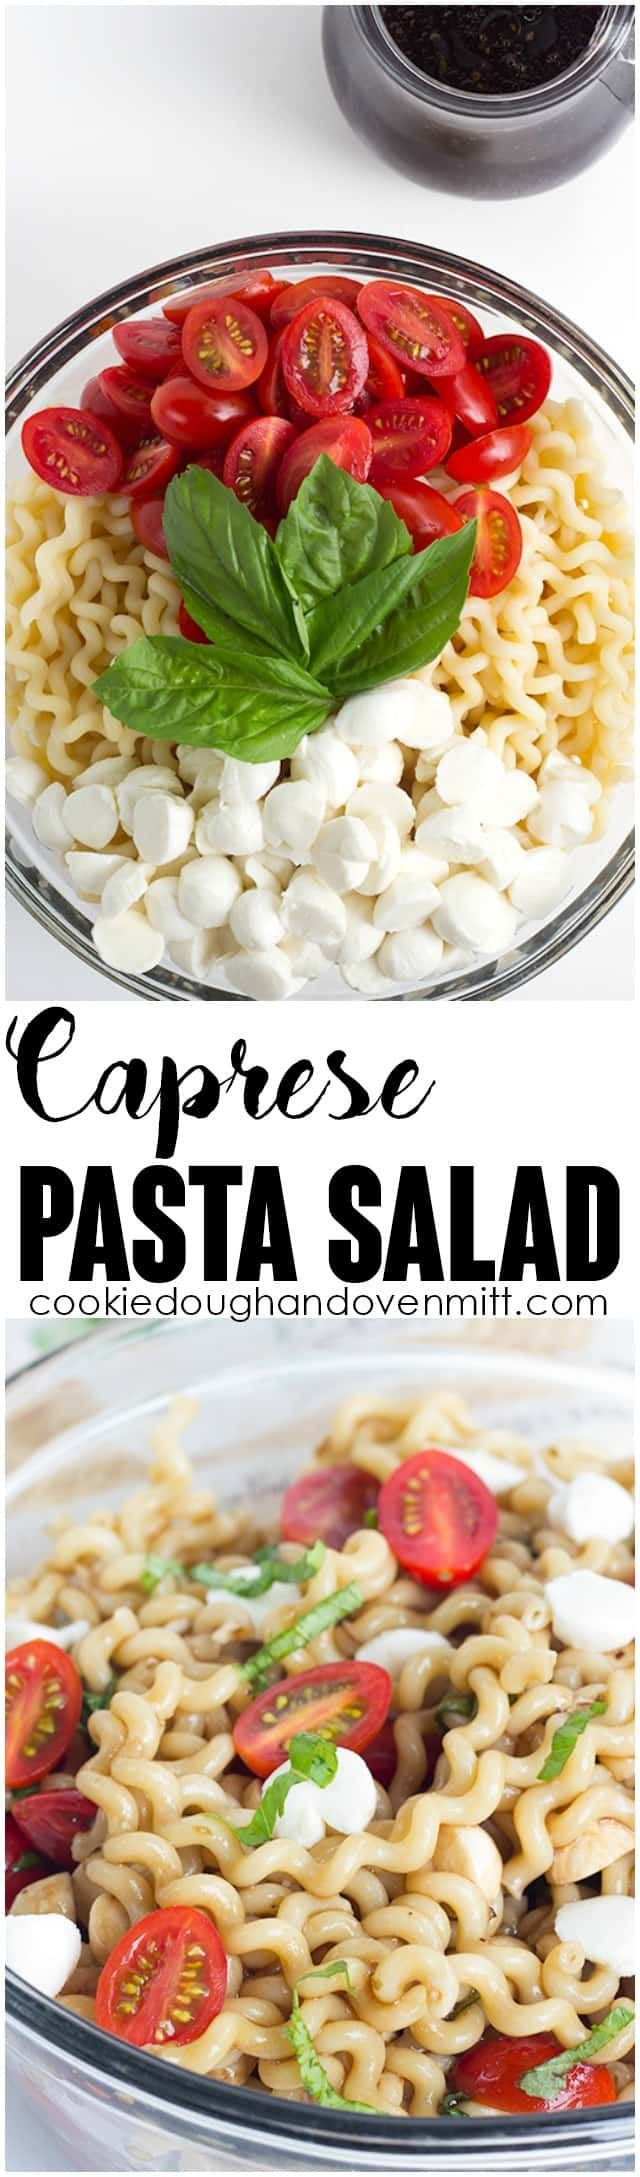 Caprese Pasta Salad - Pasta salad fanatics, you have to try out this one! There's a balsamic vinaigrette dressing, long pasta spirals, fresh mozzarella pearls, halved cherry tomatoes, and ribbons of basil! It's the perfect summer salad for picnics! via @mmmirnanda